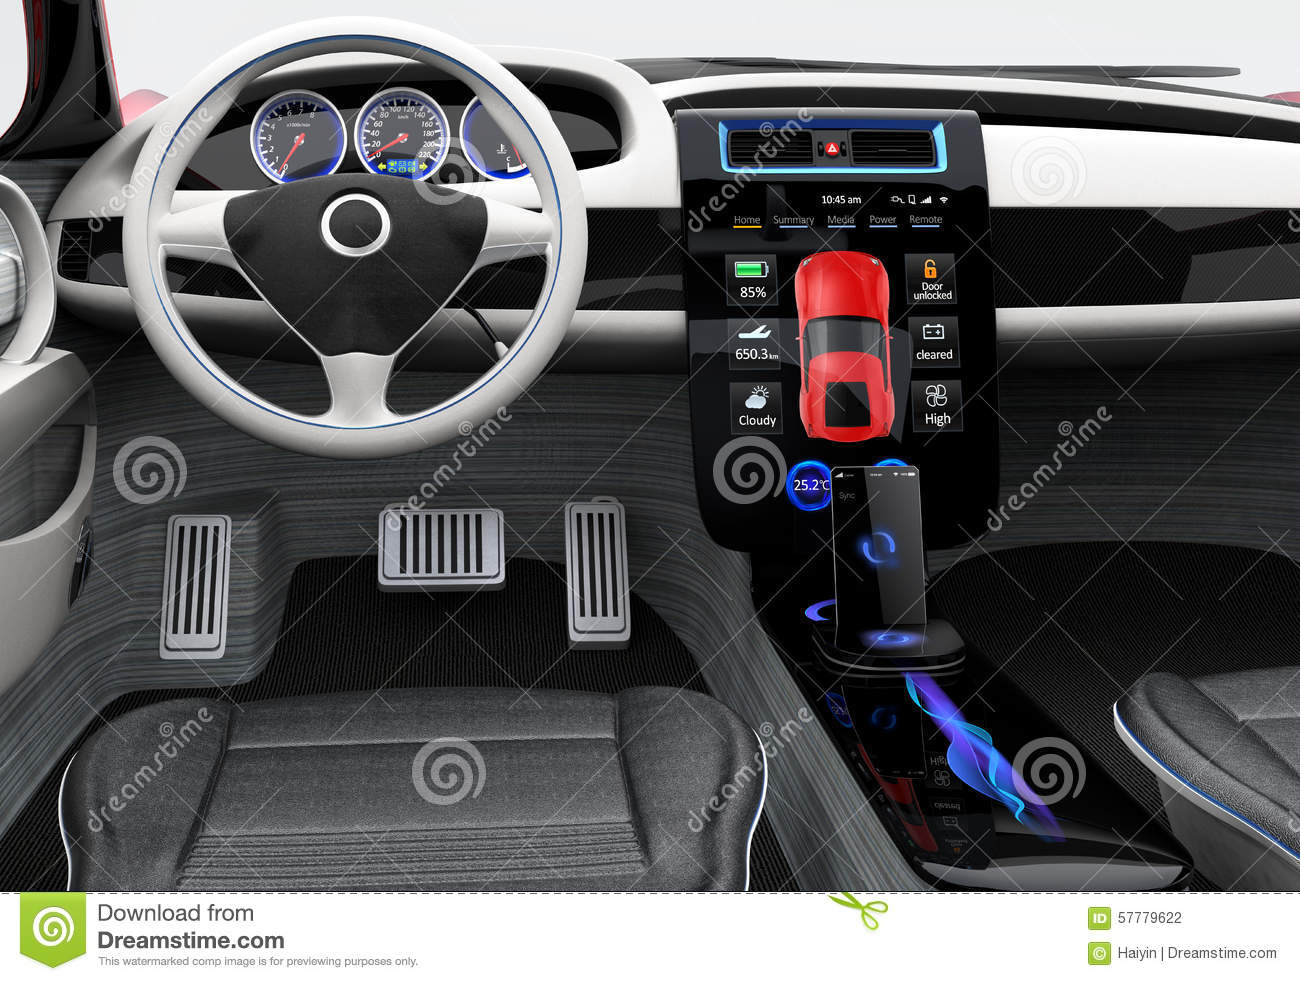 Futuristic electric vehicle dashboard and interior design for Dash designs car interior shop